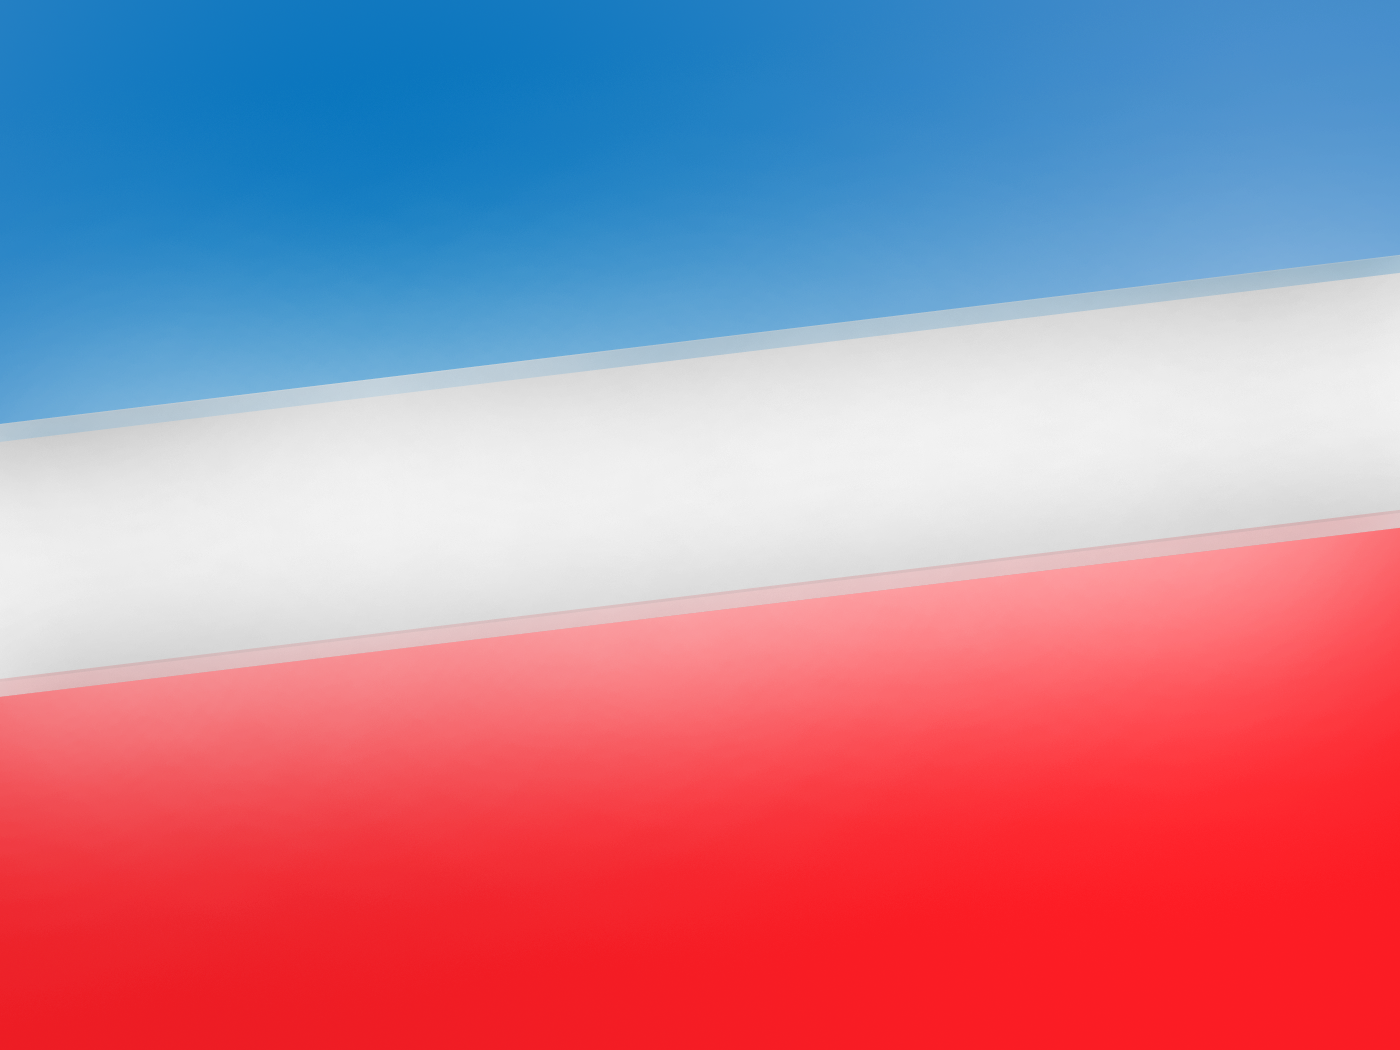 wallpaper red white and blue by too fast on deviantart wallpaper red white and blue by too